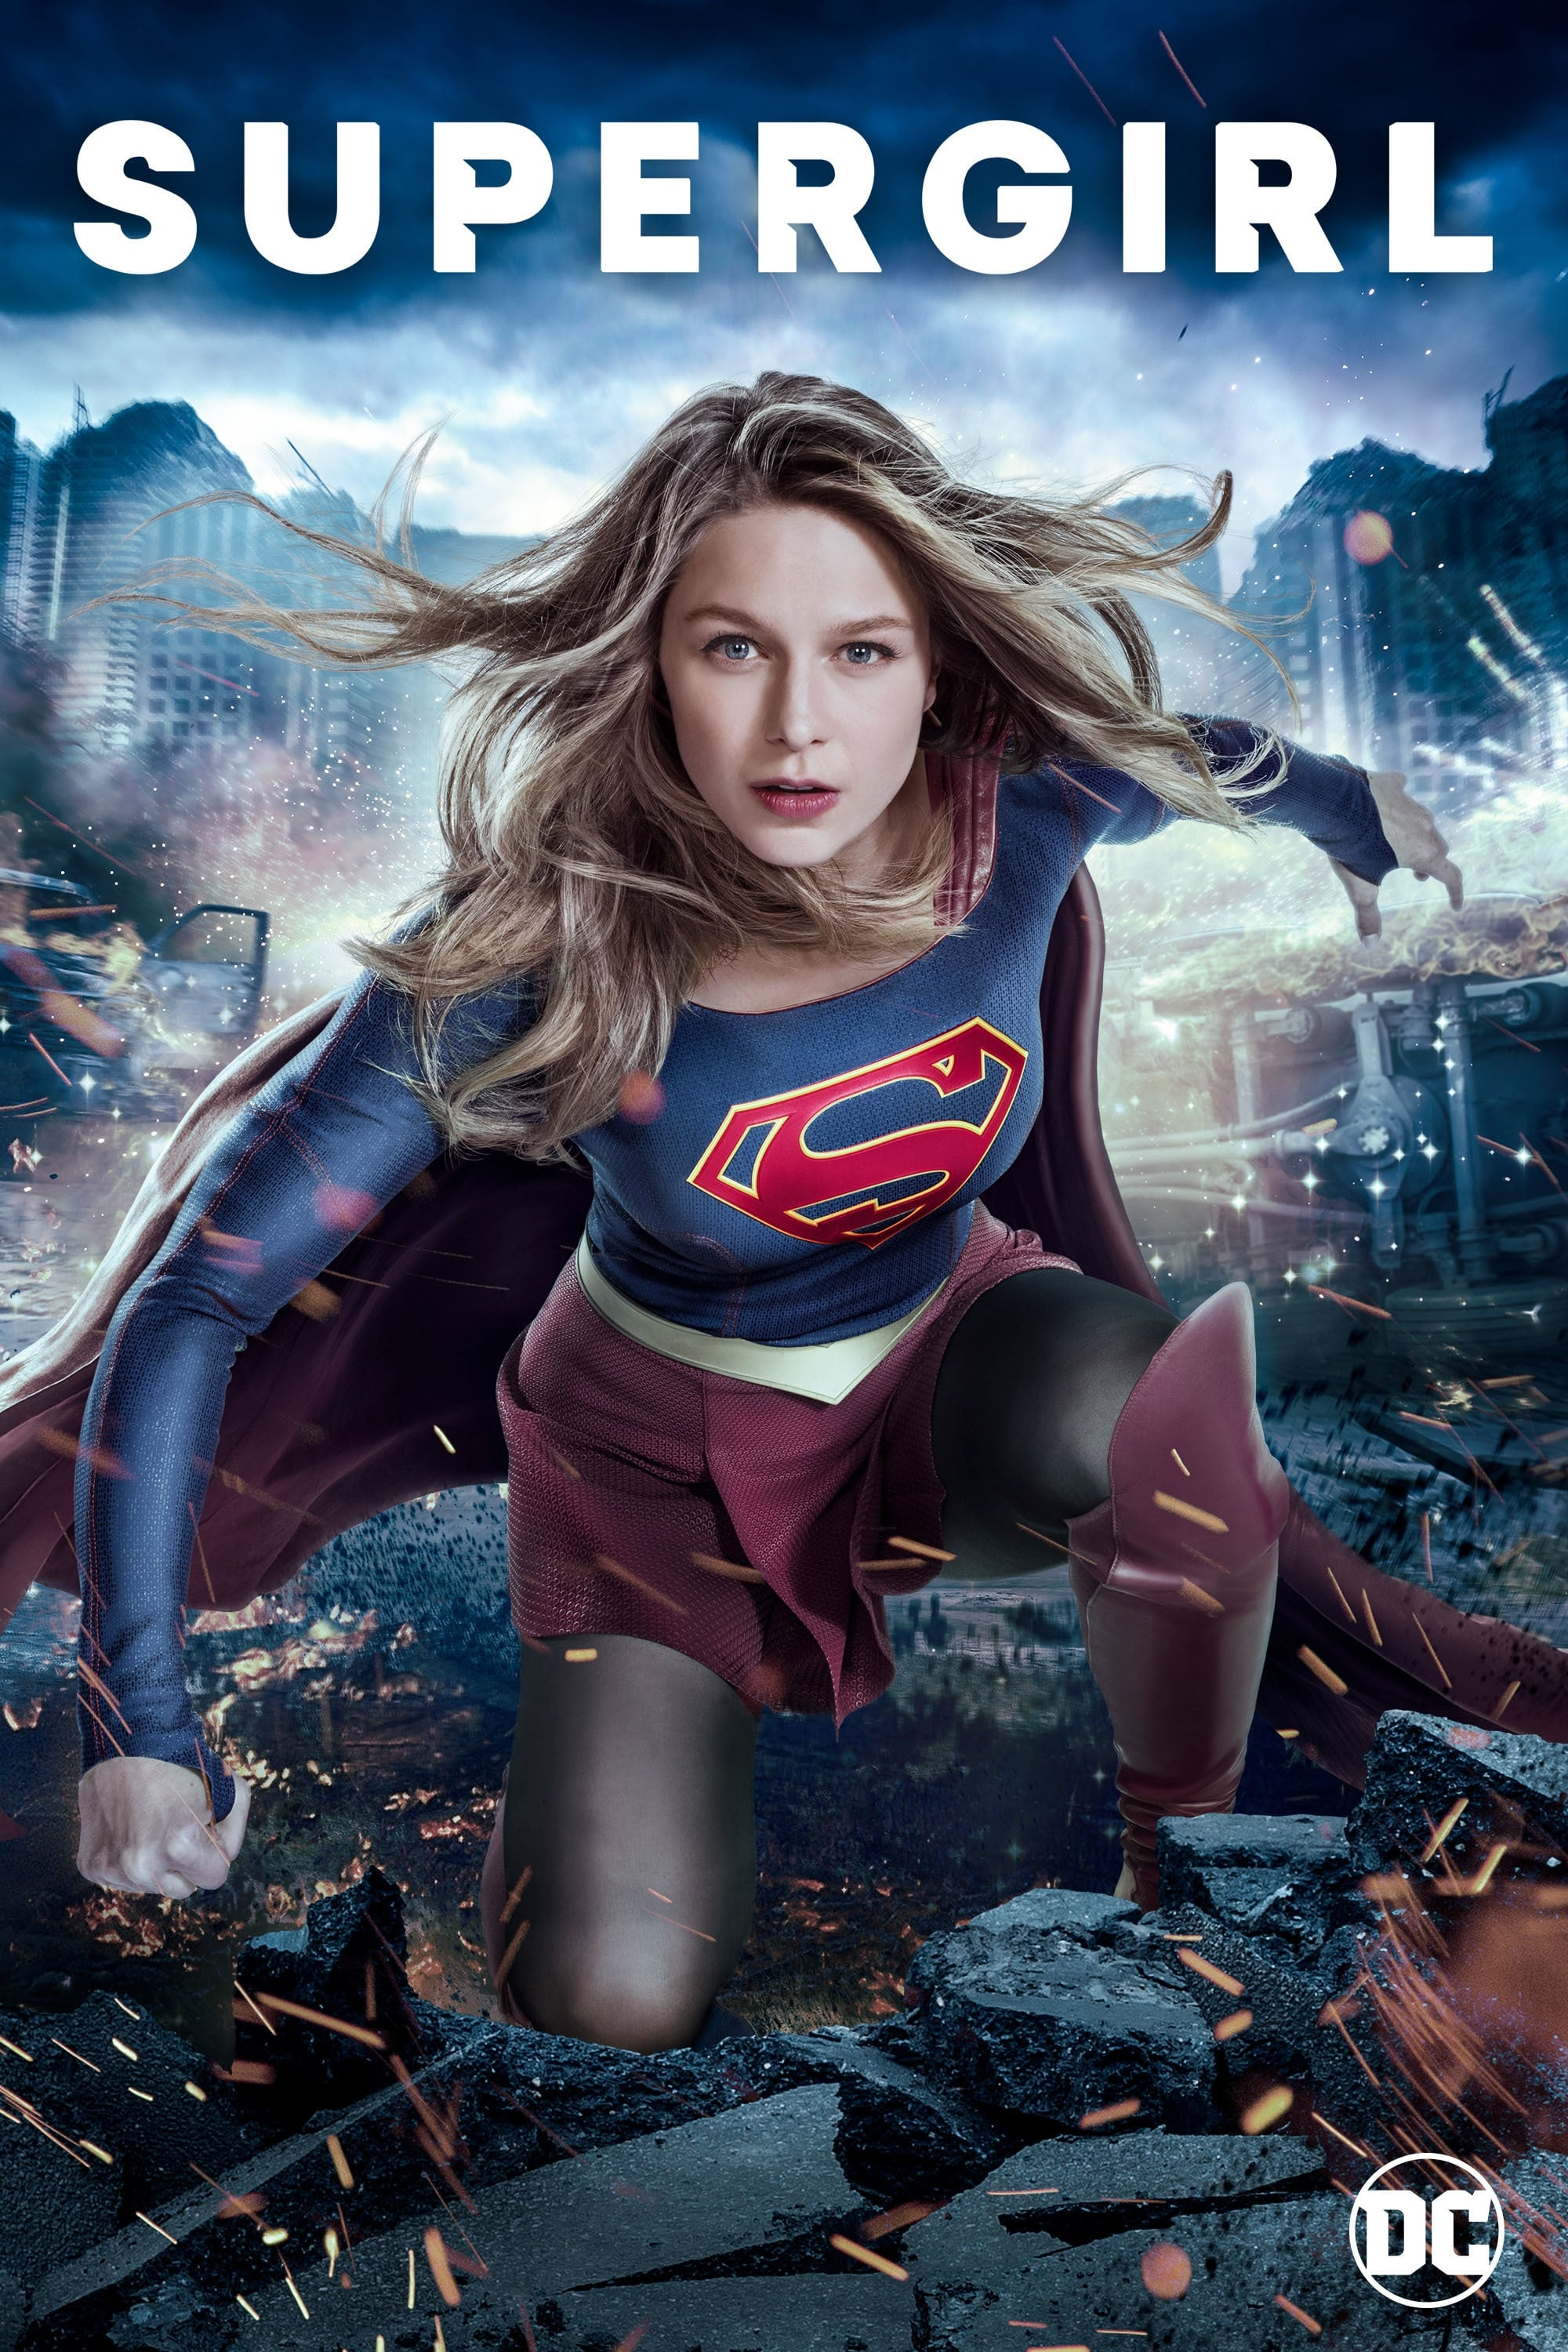 Supergirl Season 4 Episode 9